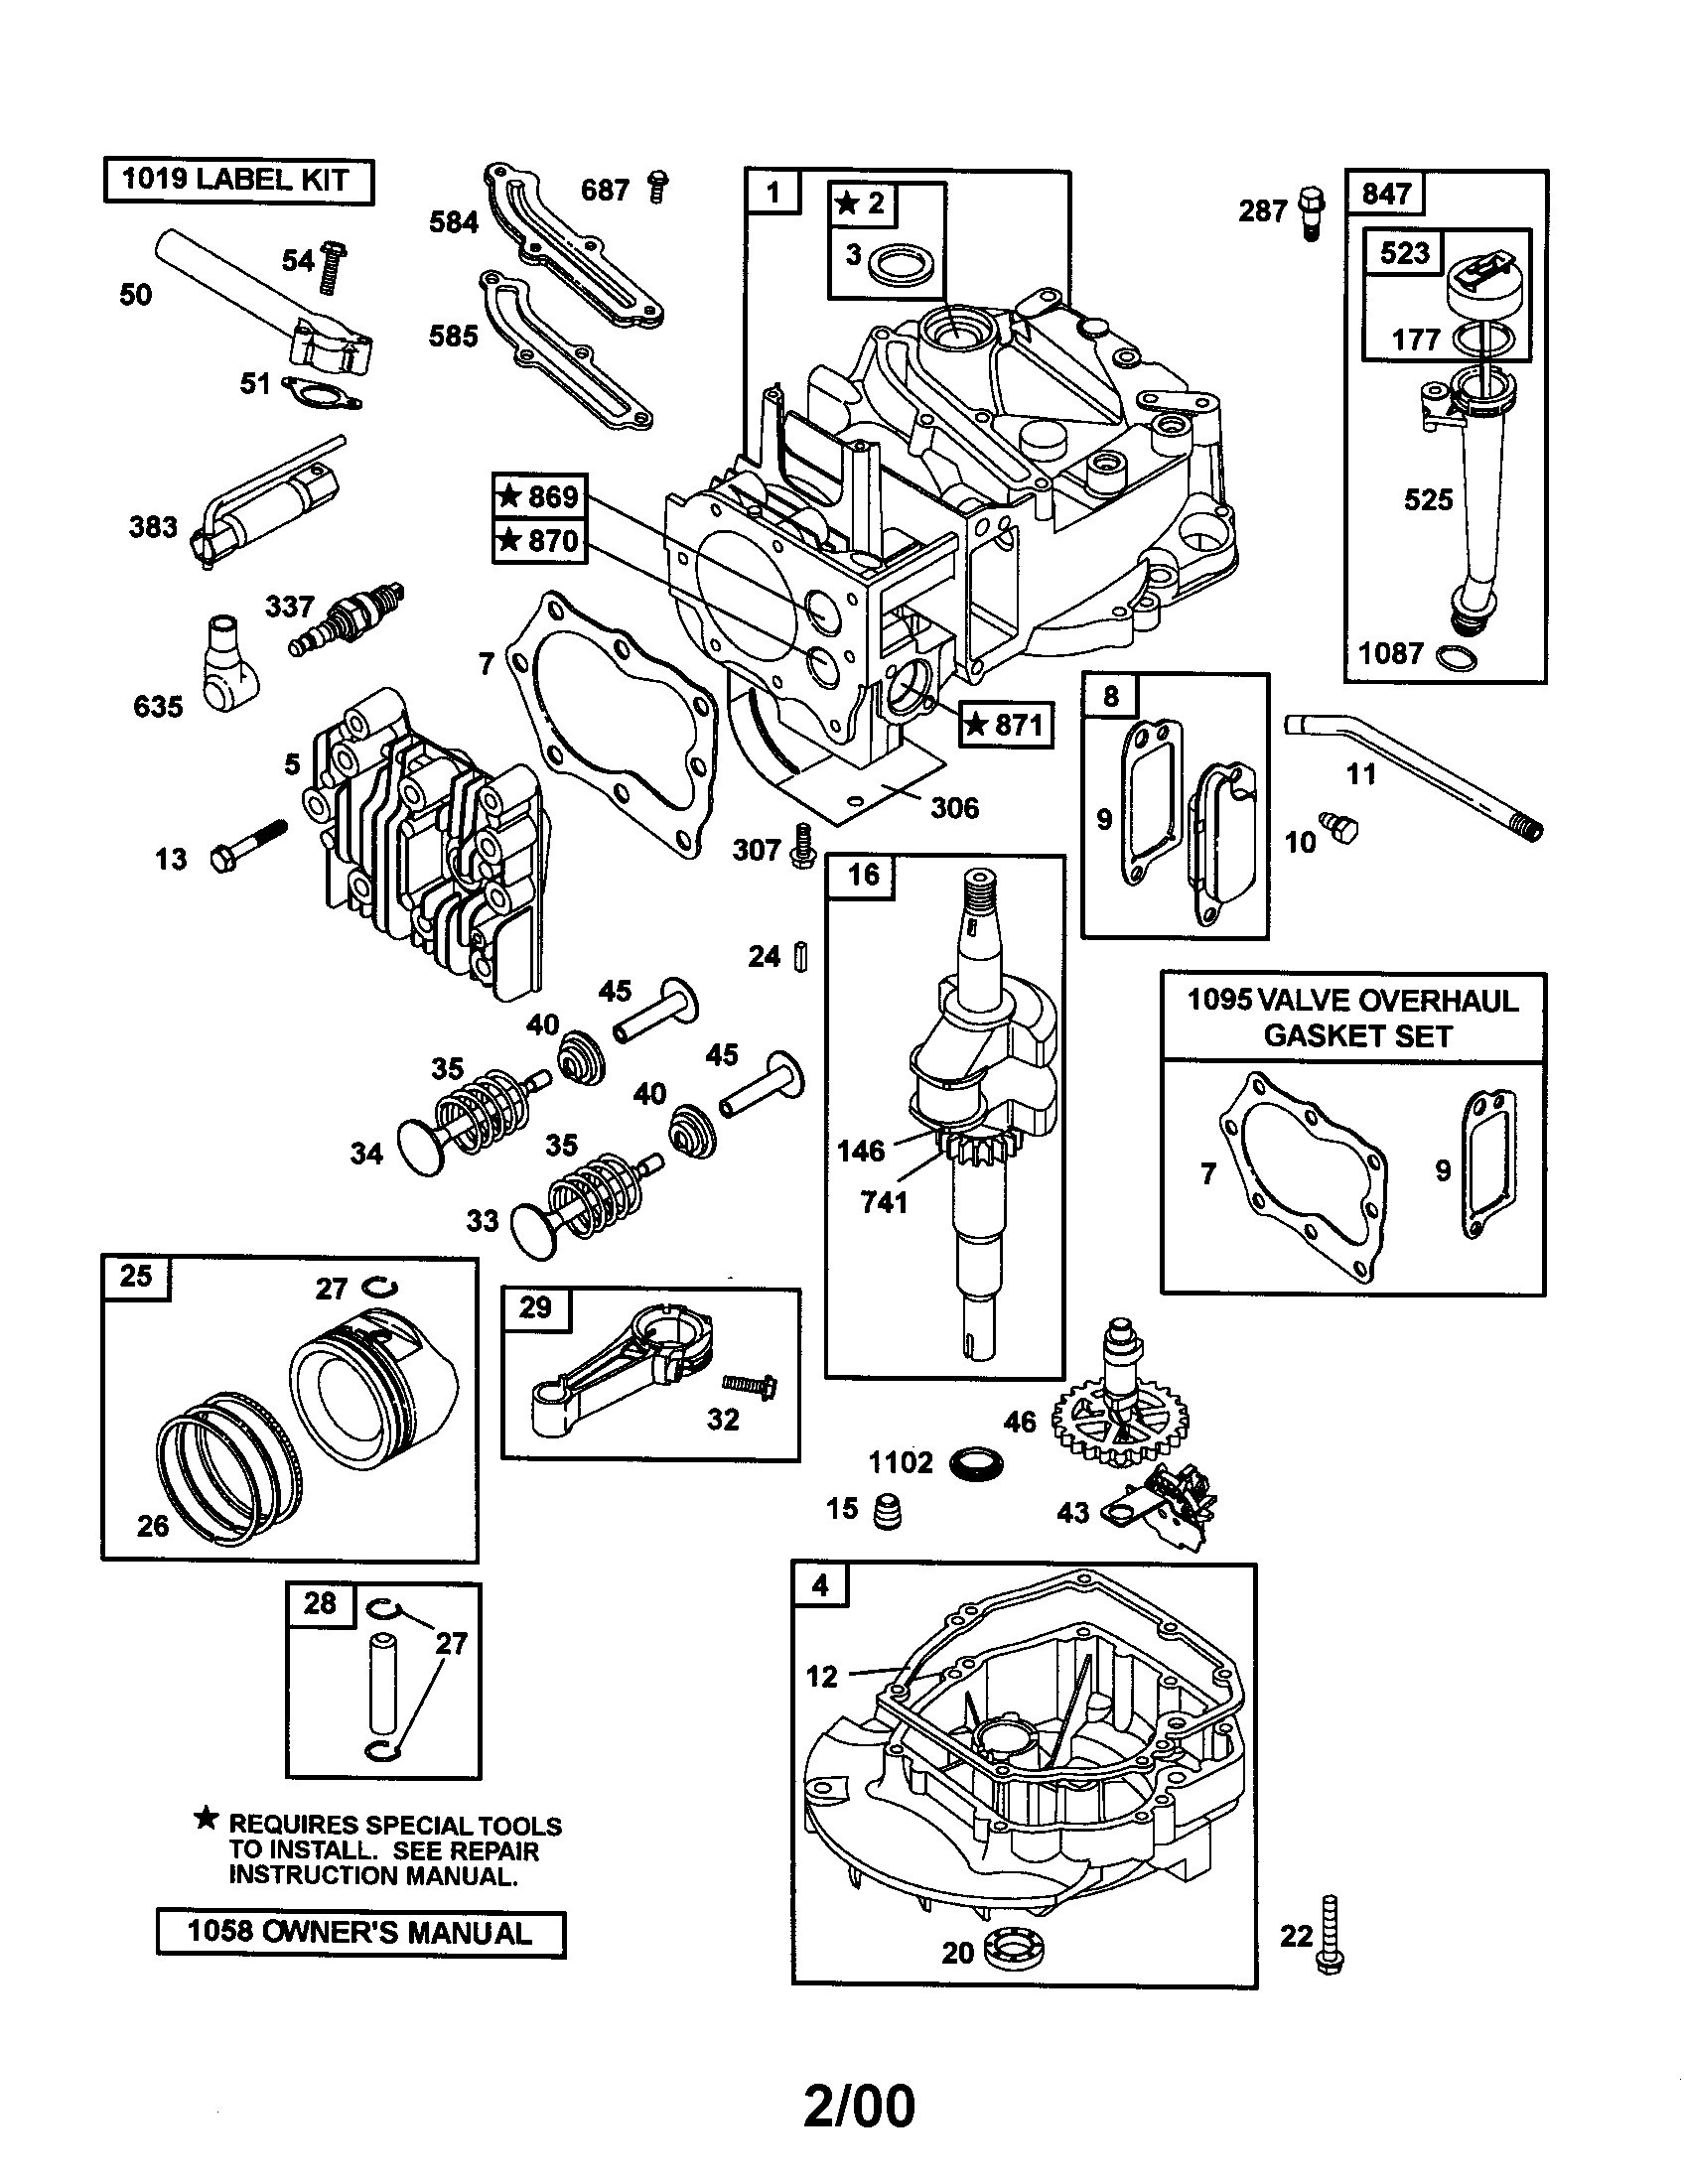 1993 F150 4 9 Engine Diagram | Wiring Diagram  L Engine Diagram on 2.8l engine diagram, 4.3l engine diagram, 4.0l engine diagram, 4.2l engine diagram, diesel engine diagram, 2.2l engine diagram, 3.8l engine diagram, l6 engine diagram, 3.9l engine diagram, 7.3l engine diagram, 2.5l engine diagram, 3.1l engine diagram, 6.4l engine diagram, 2.0l engine diagram, 5.3l engine diagram, 5.4l engine diagram, v-6 engine diagram, 2.3l engine diagram, v-8 engine diagram, 6.0l engine diagram,